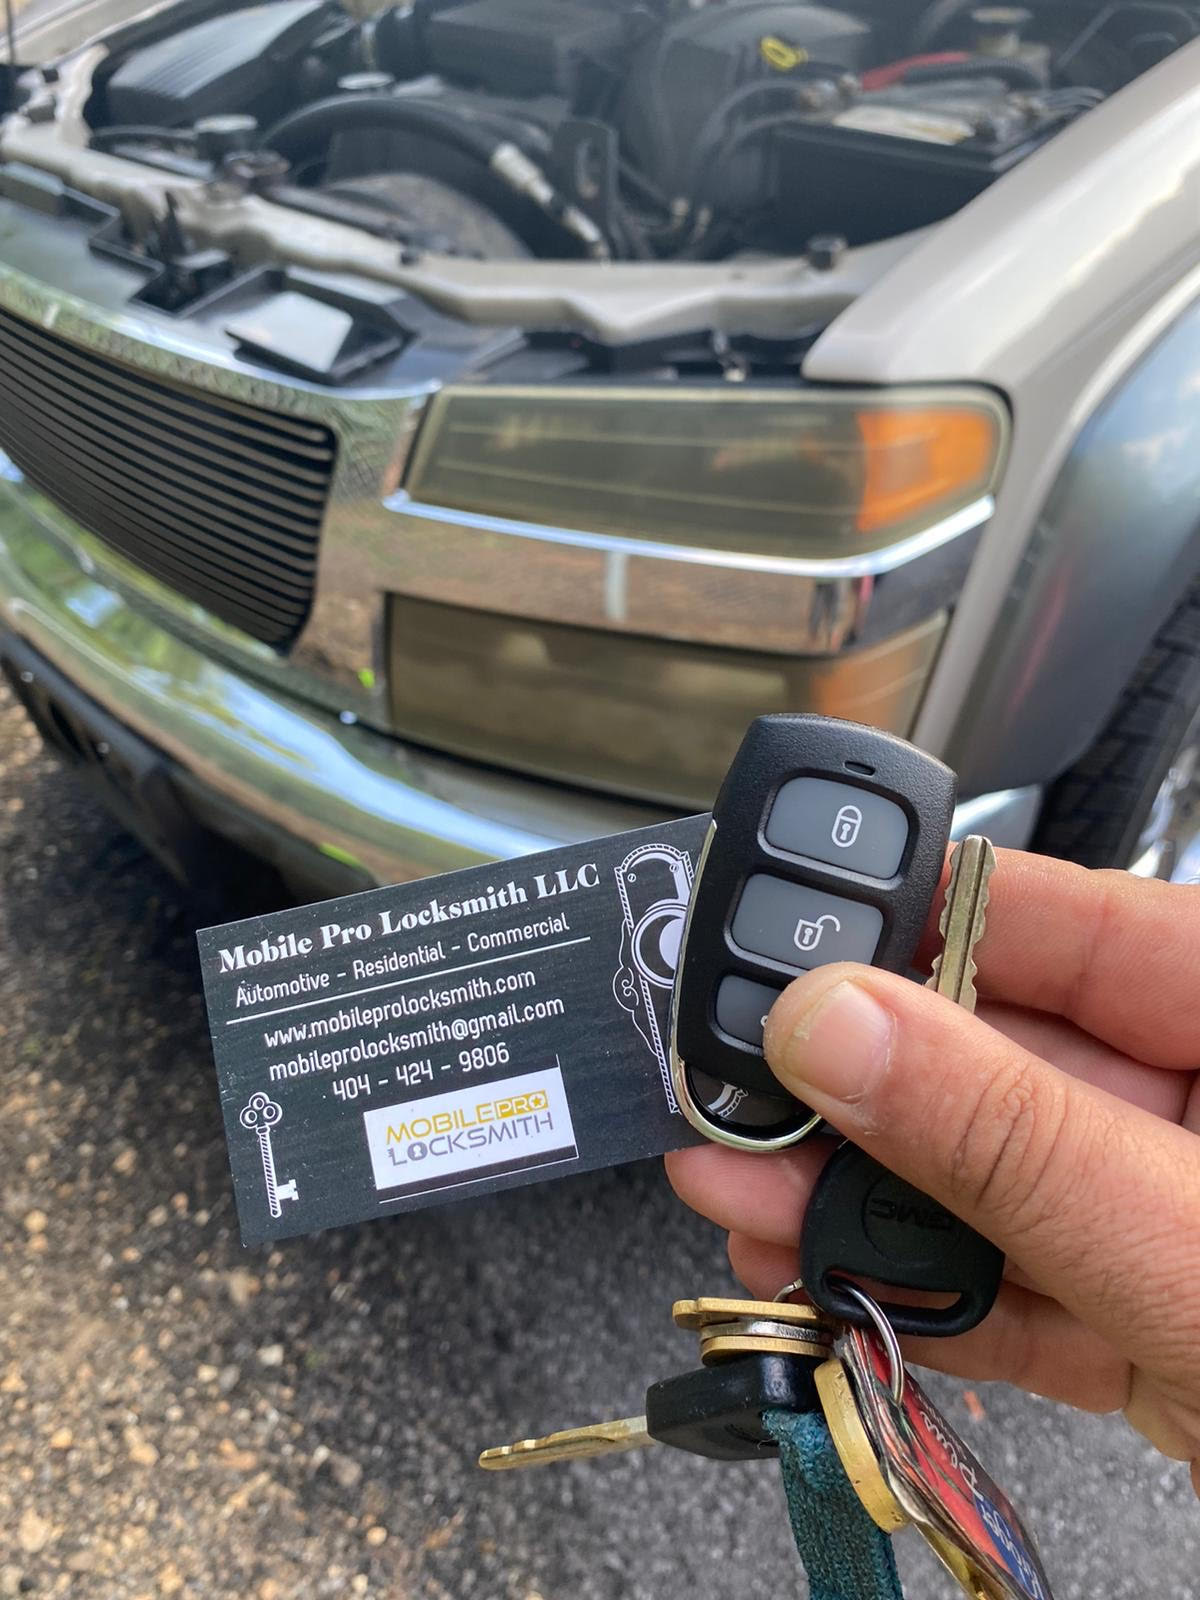 Mobile Pro Locksmith LLC automotive locksmith services in Lawrenceville Ga